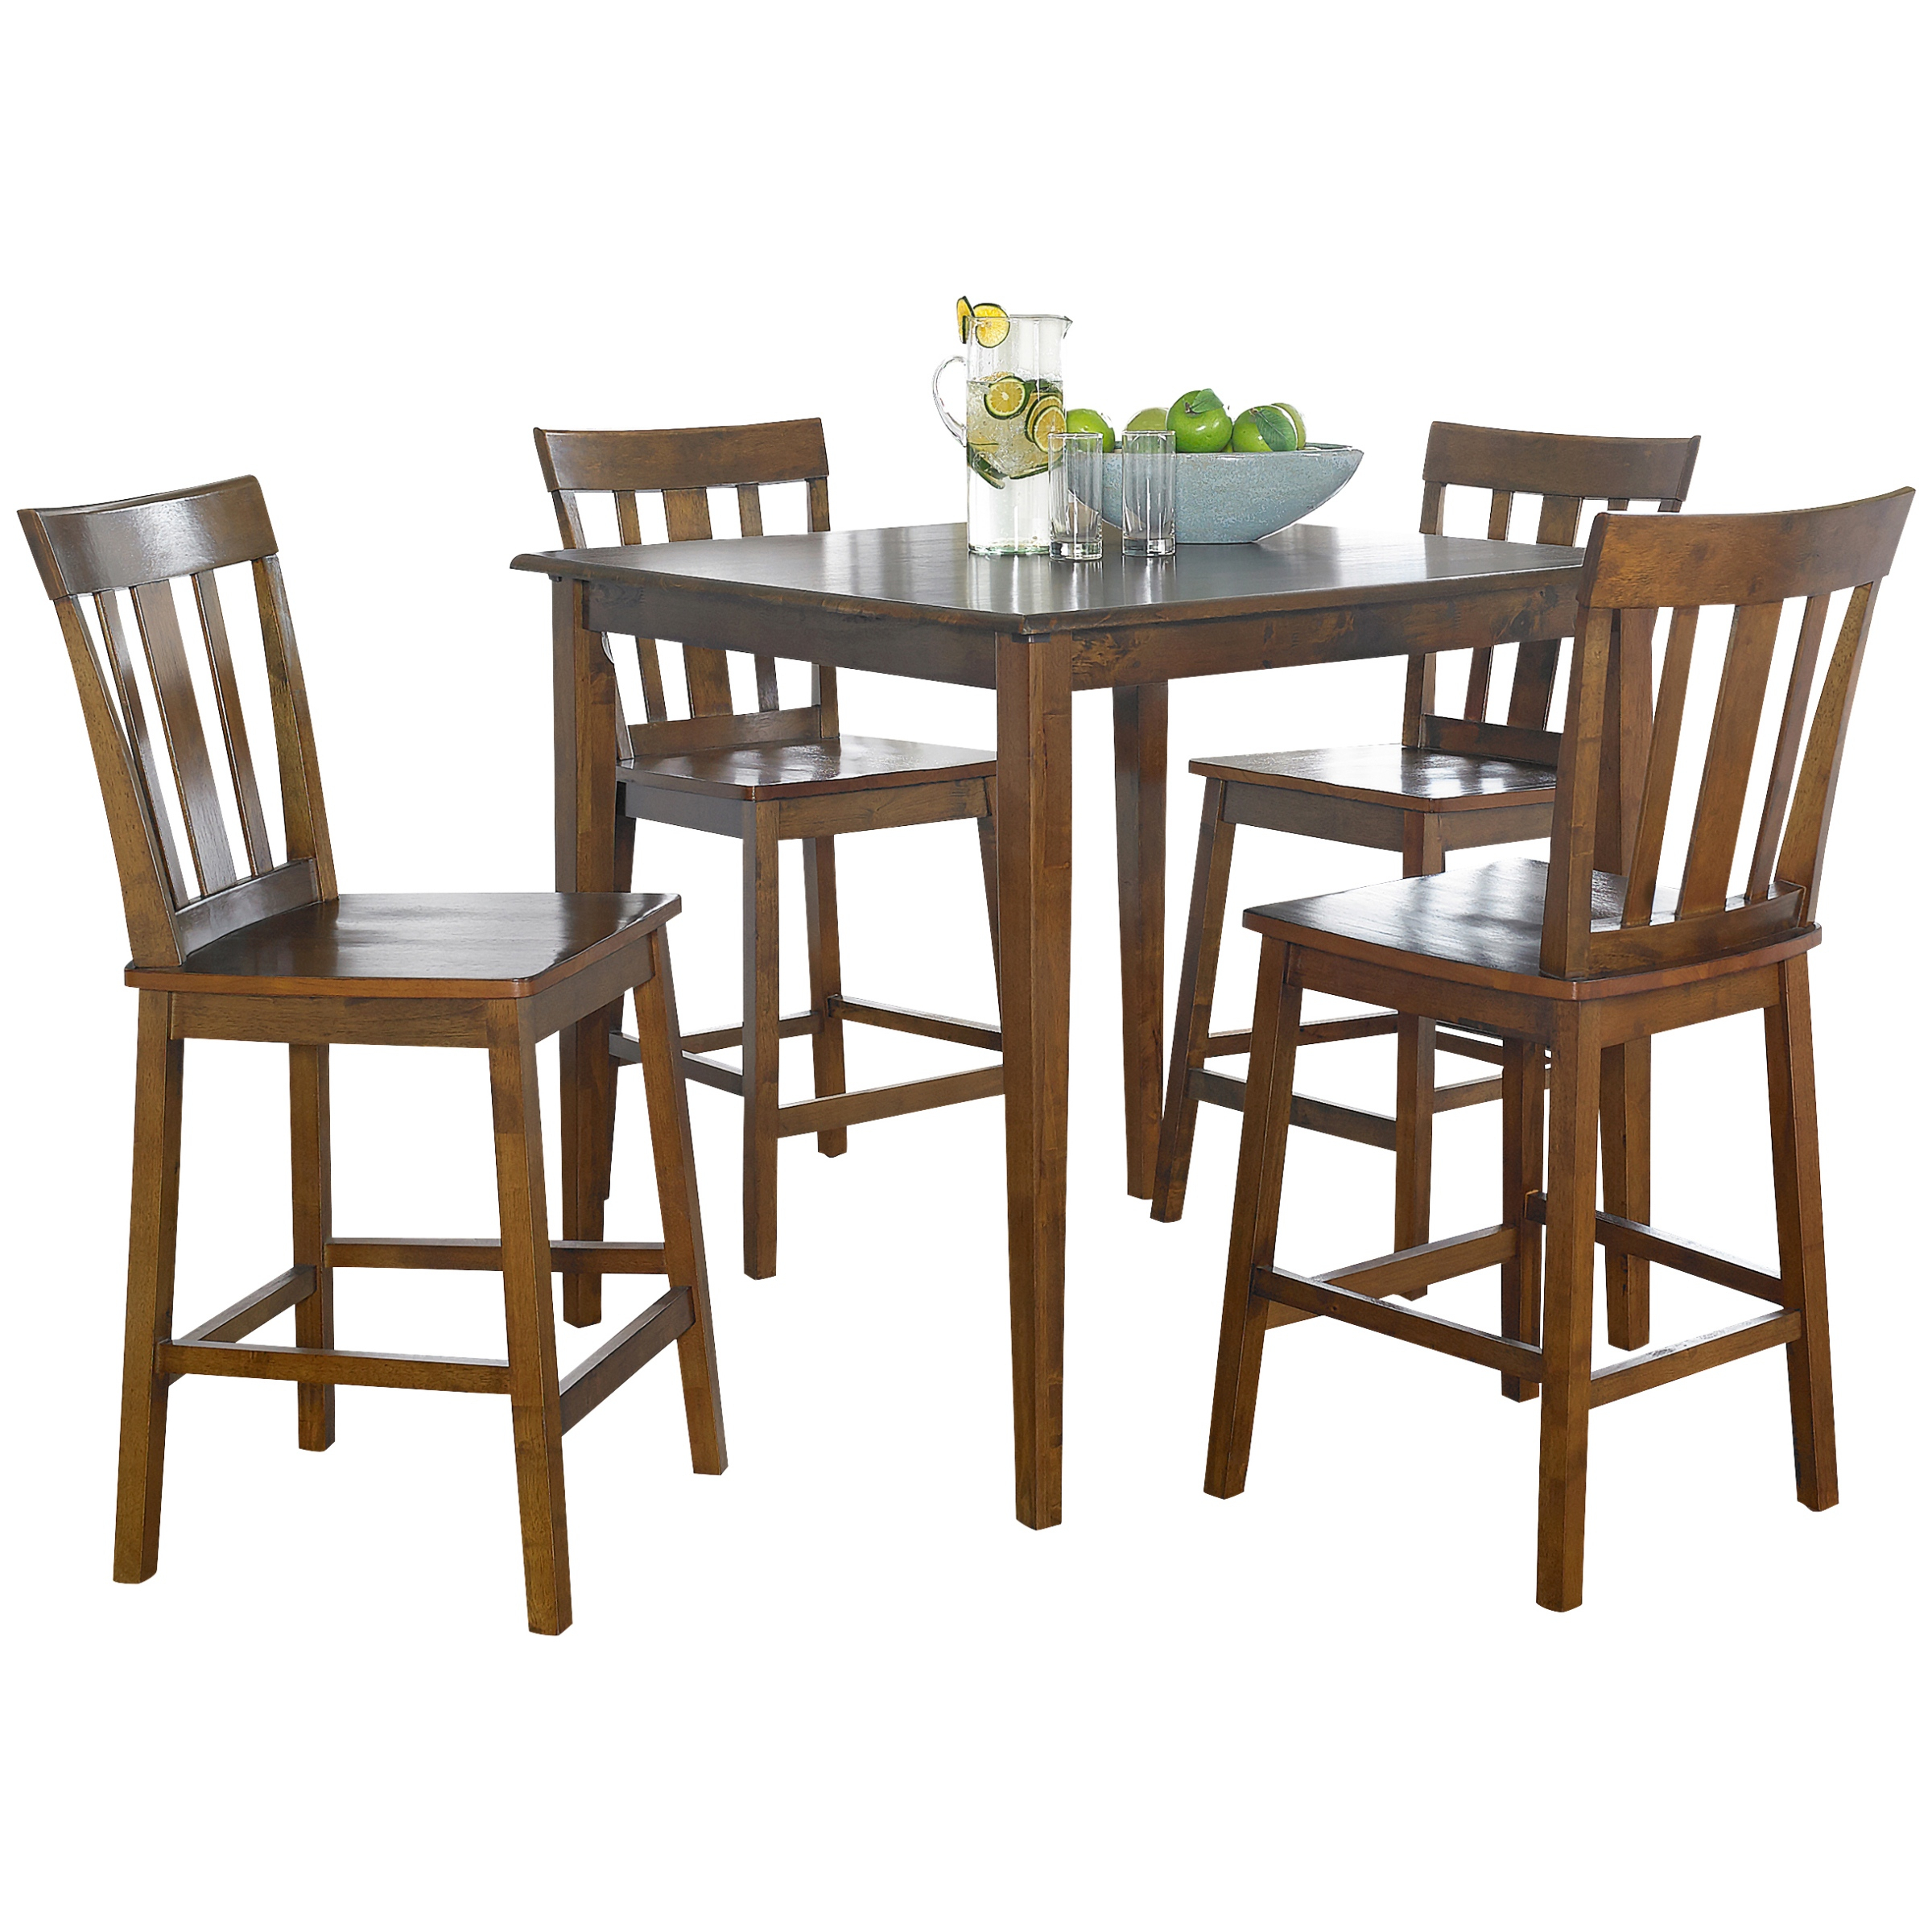 Mainstays 5 Piece Mission Counter Height Dining Set – Walmart Inside Popular Goodman 5 Piece Solid Wood Dining Sets (Set Of 5) (#11 of 20)